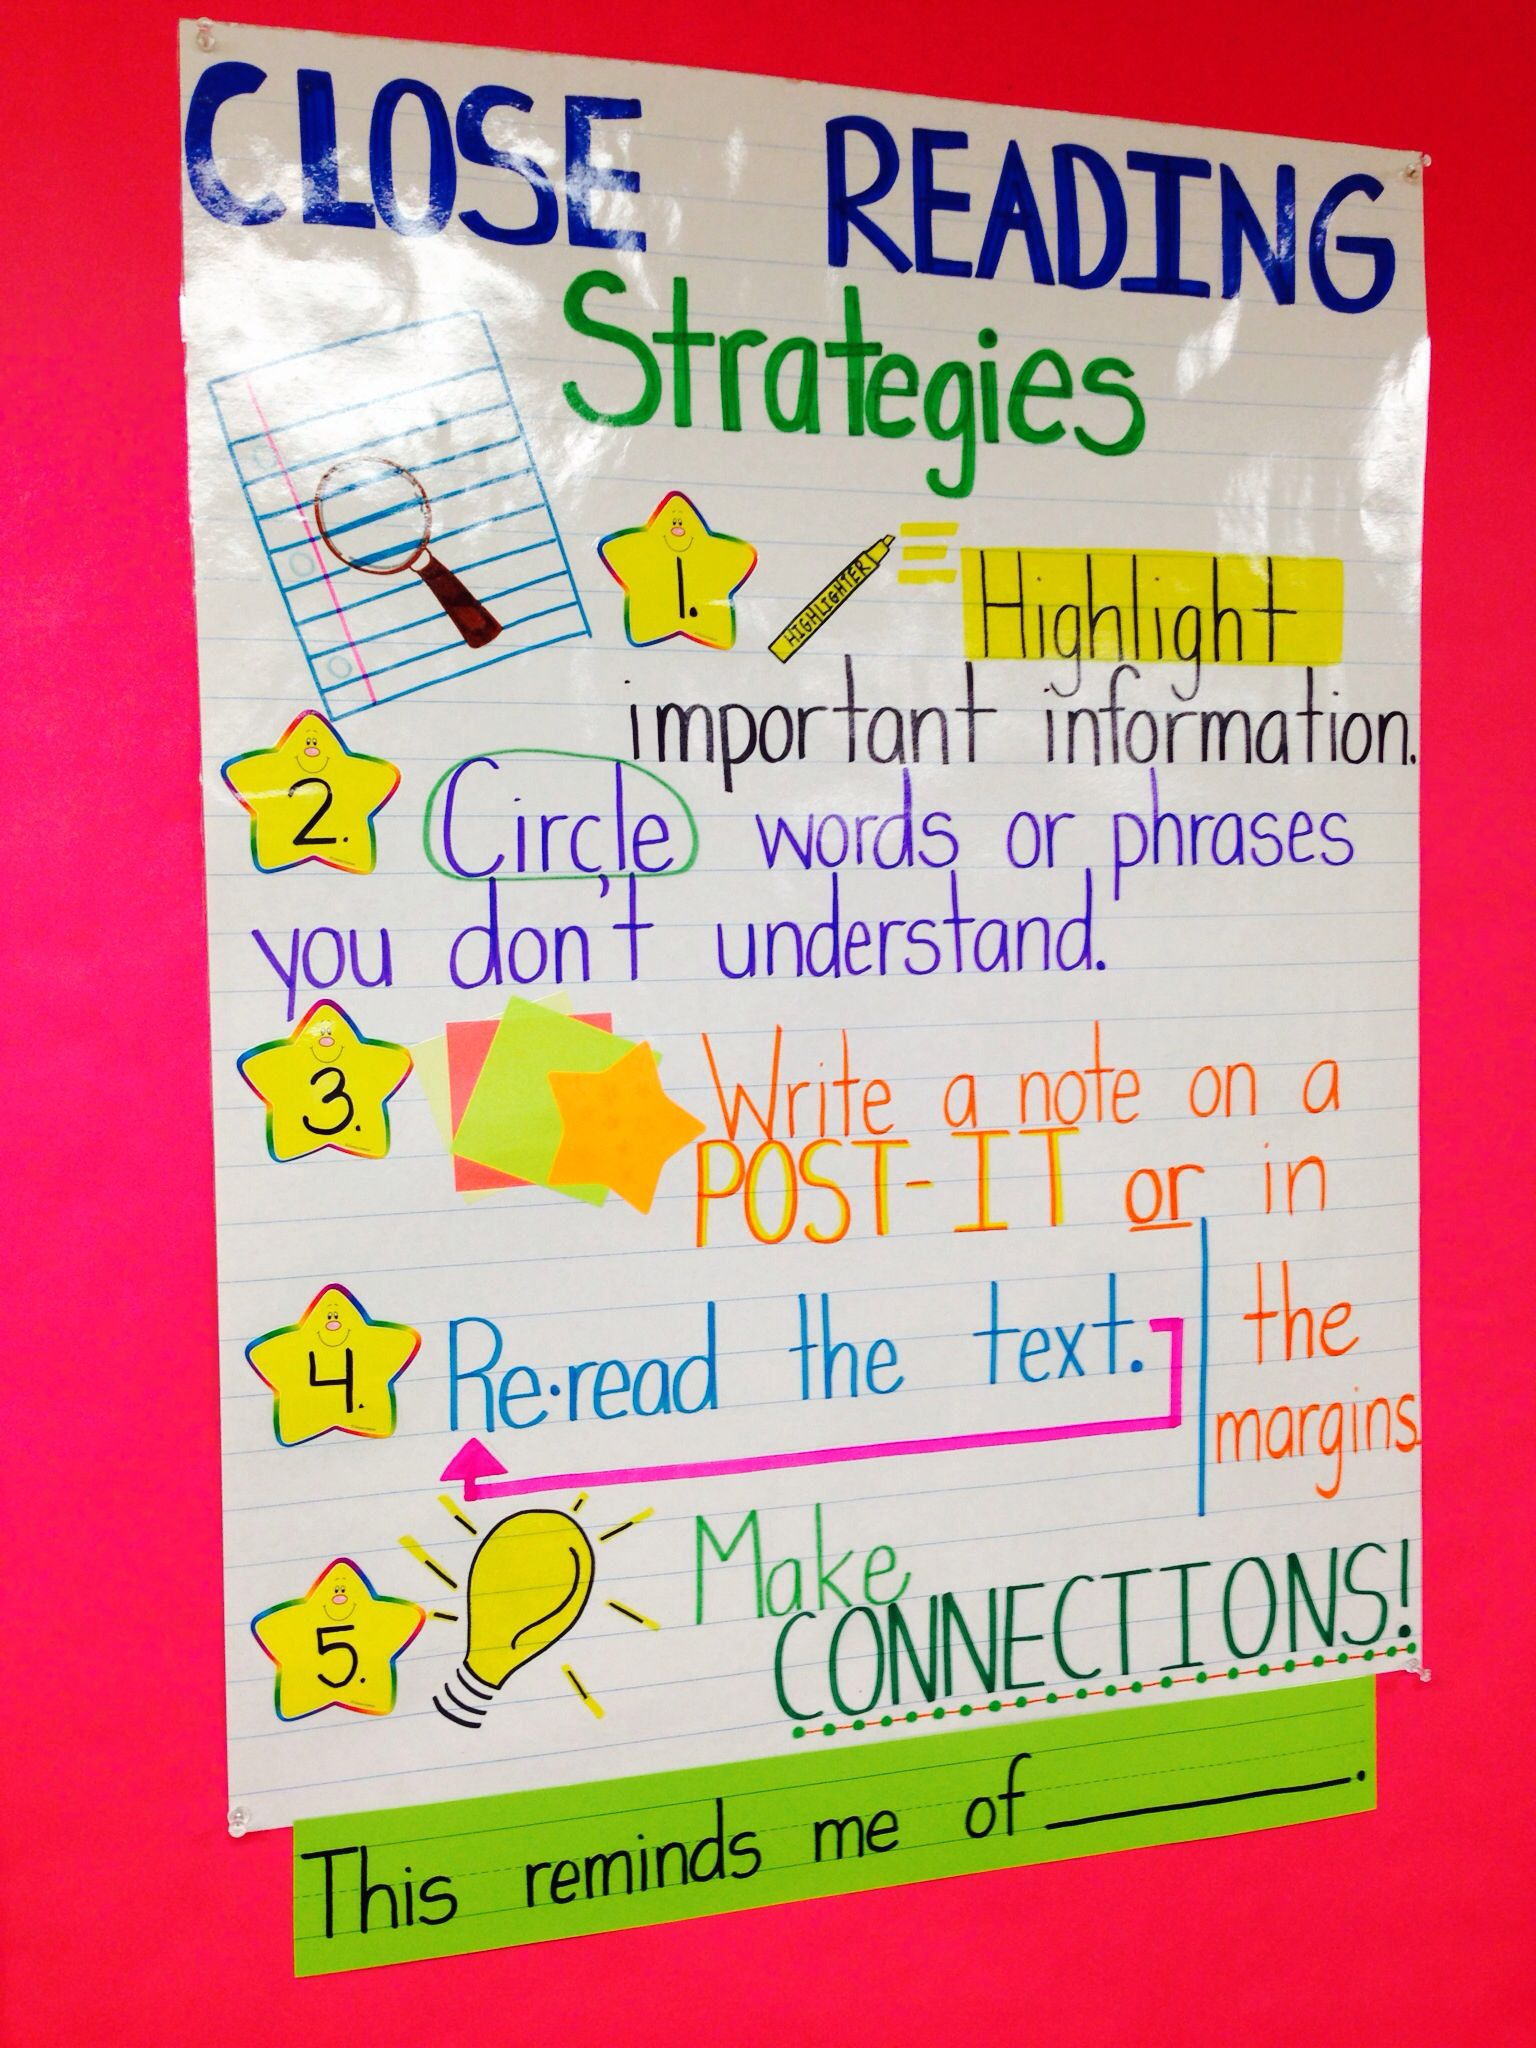 Closing in on Close Reading - Educational Leadership